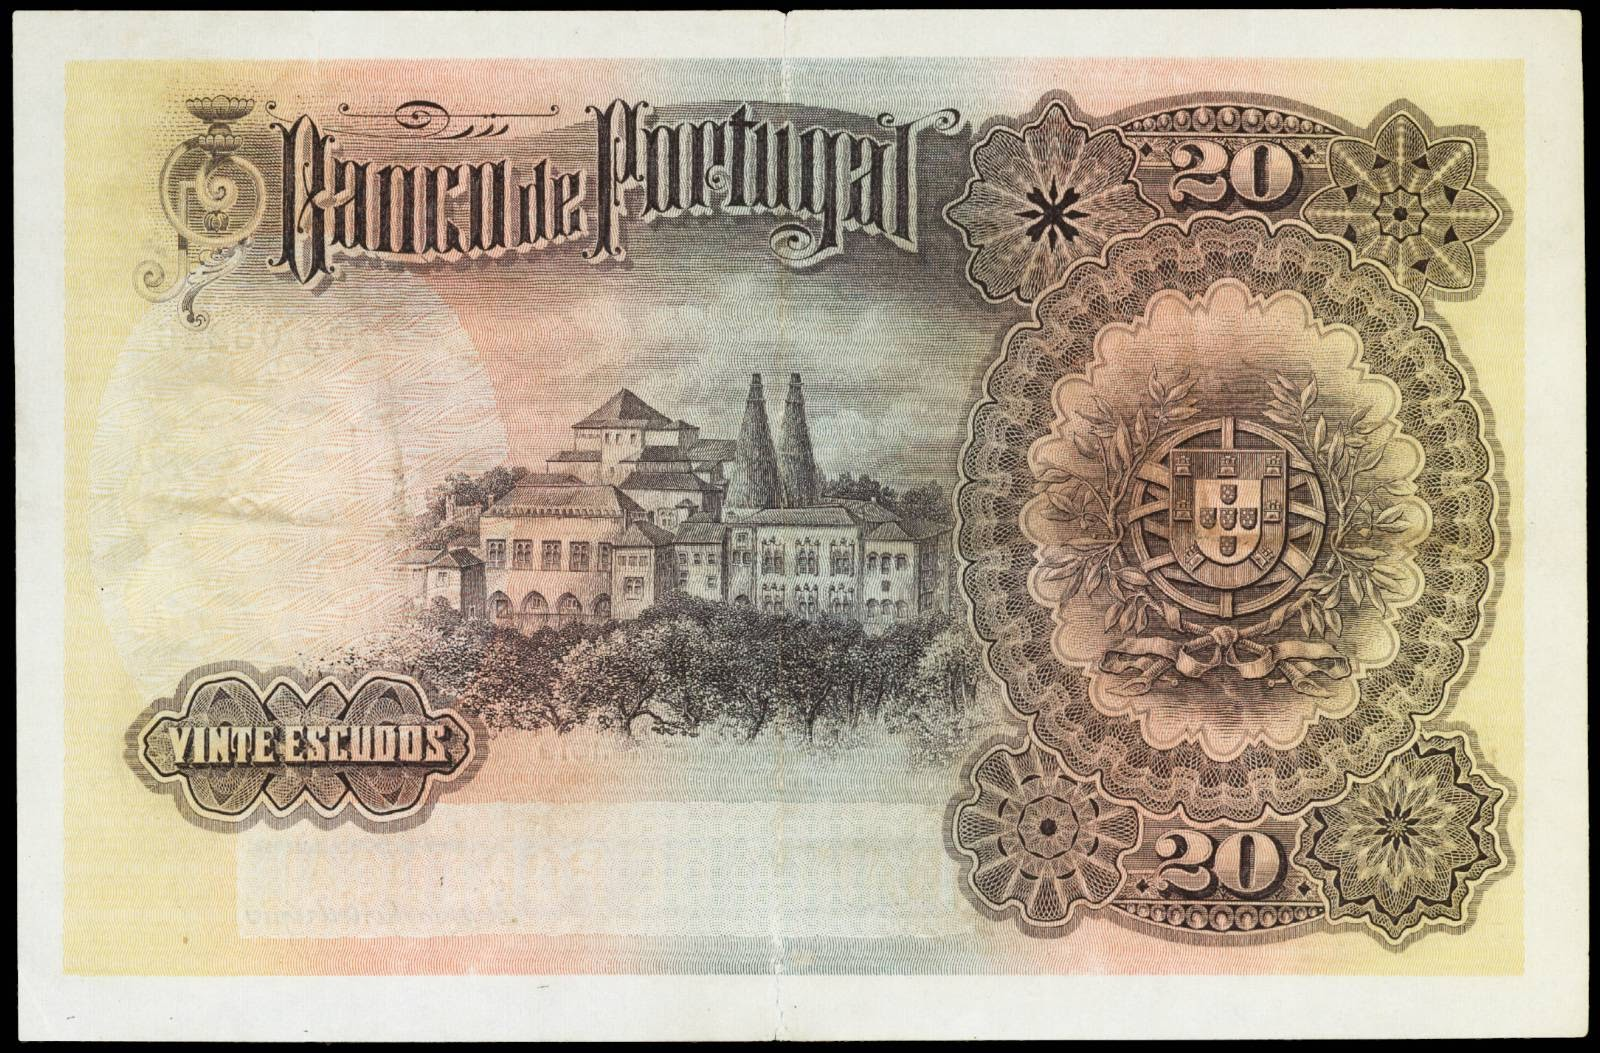 20 Portuguese Escudos banknote 1919 Sintra National Palace